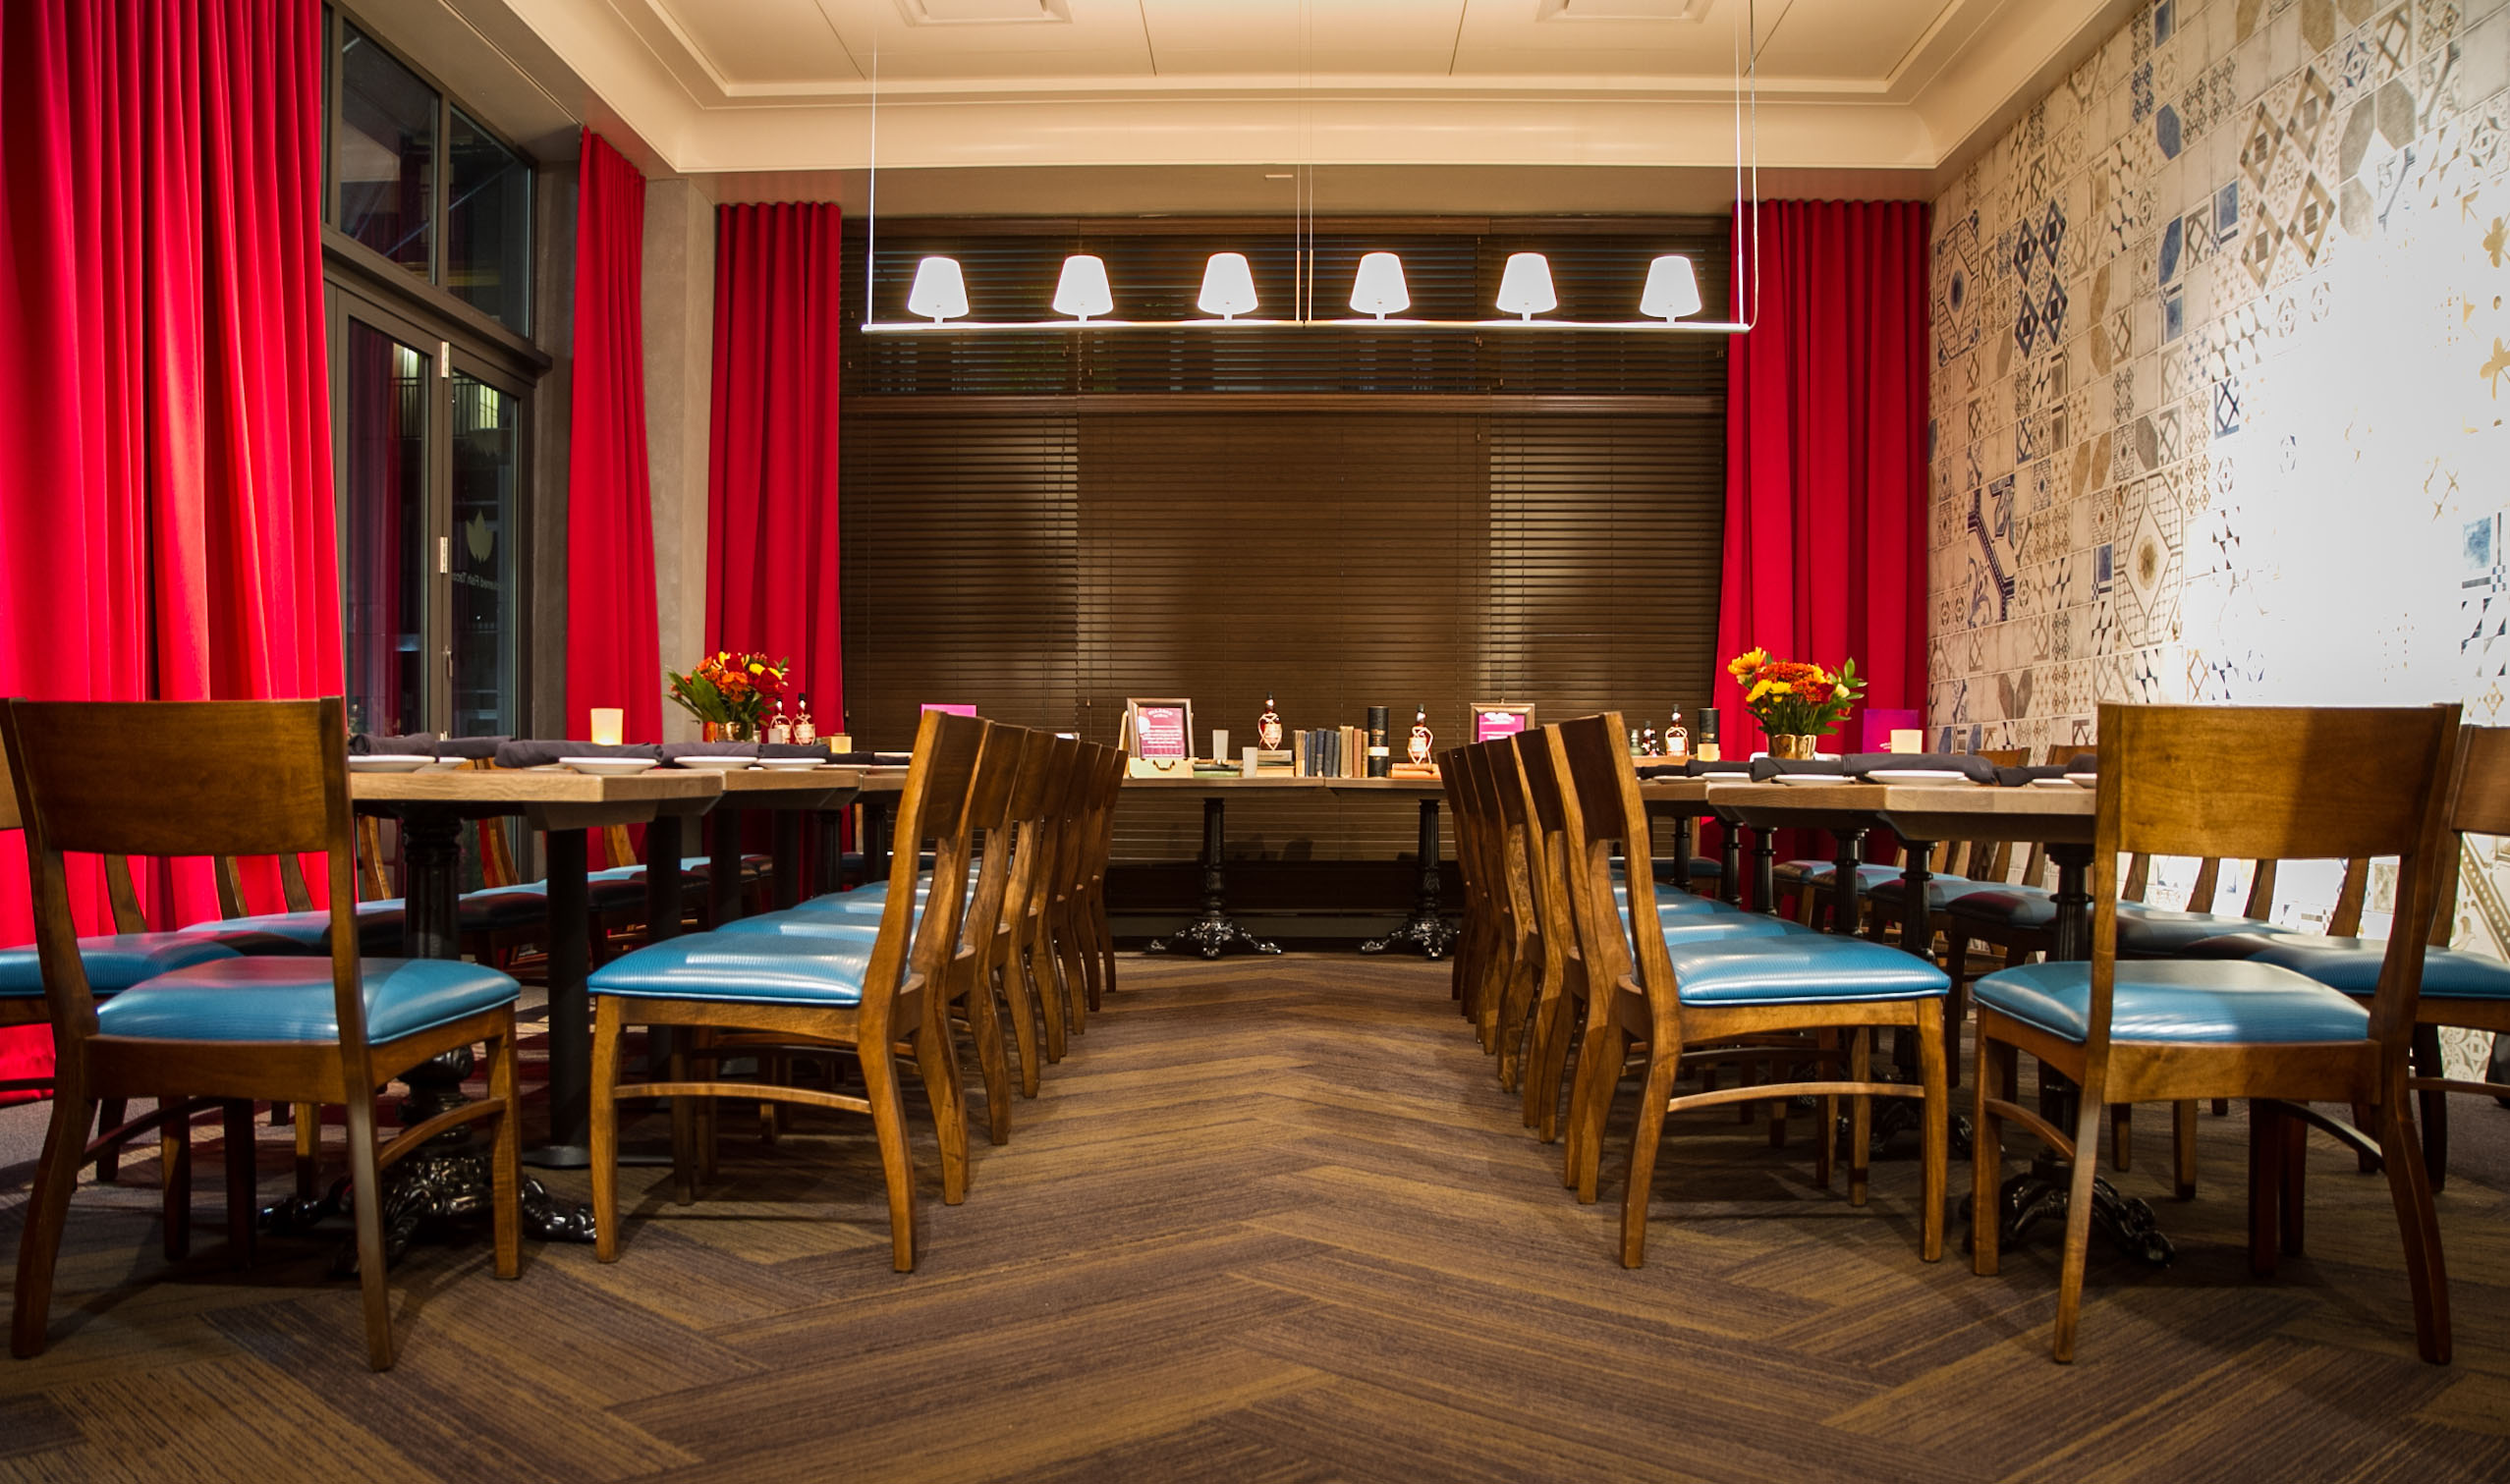 King Of Prussia Restaurants With Private Rooms